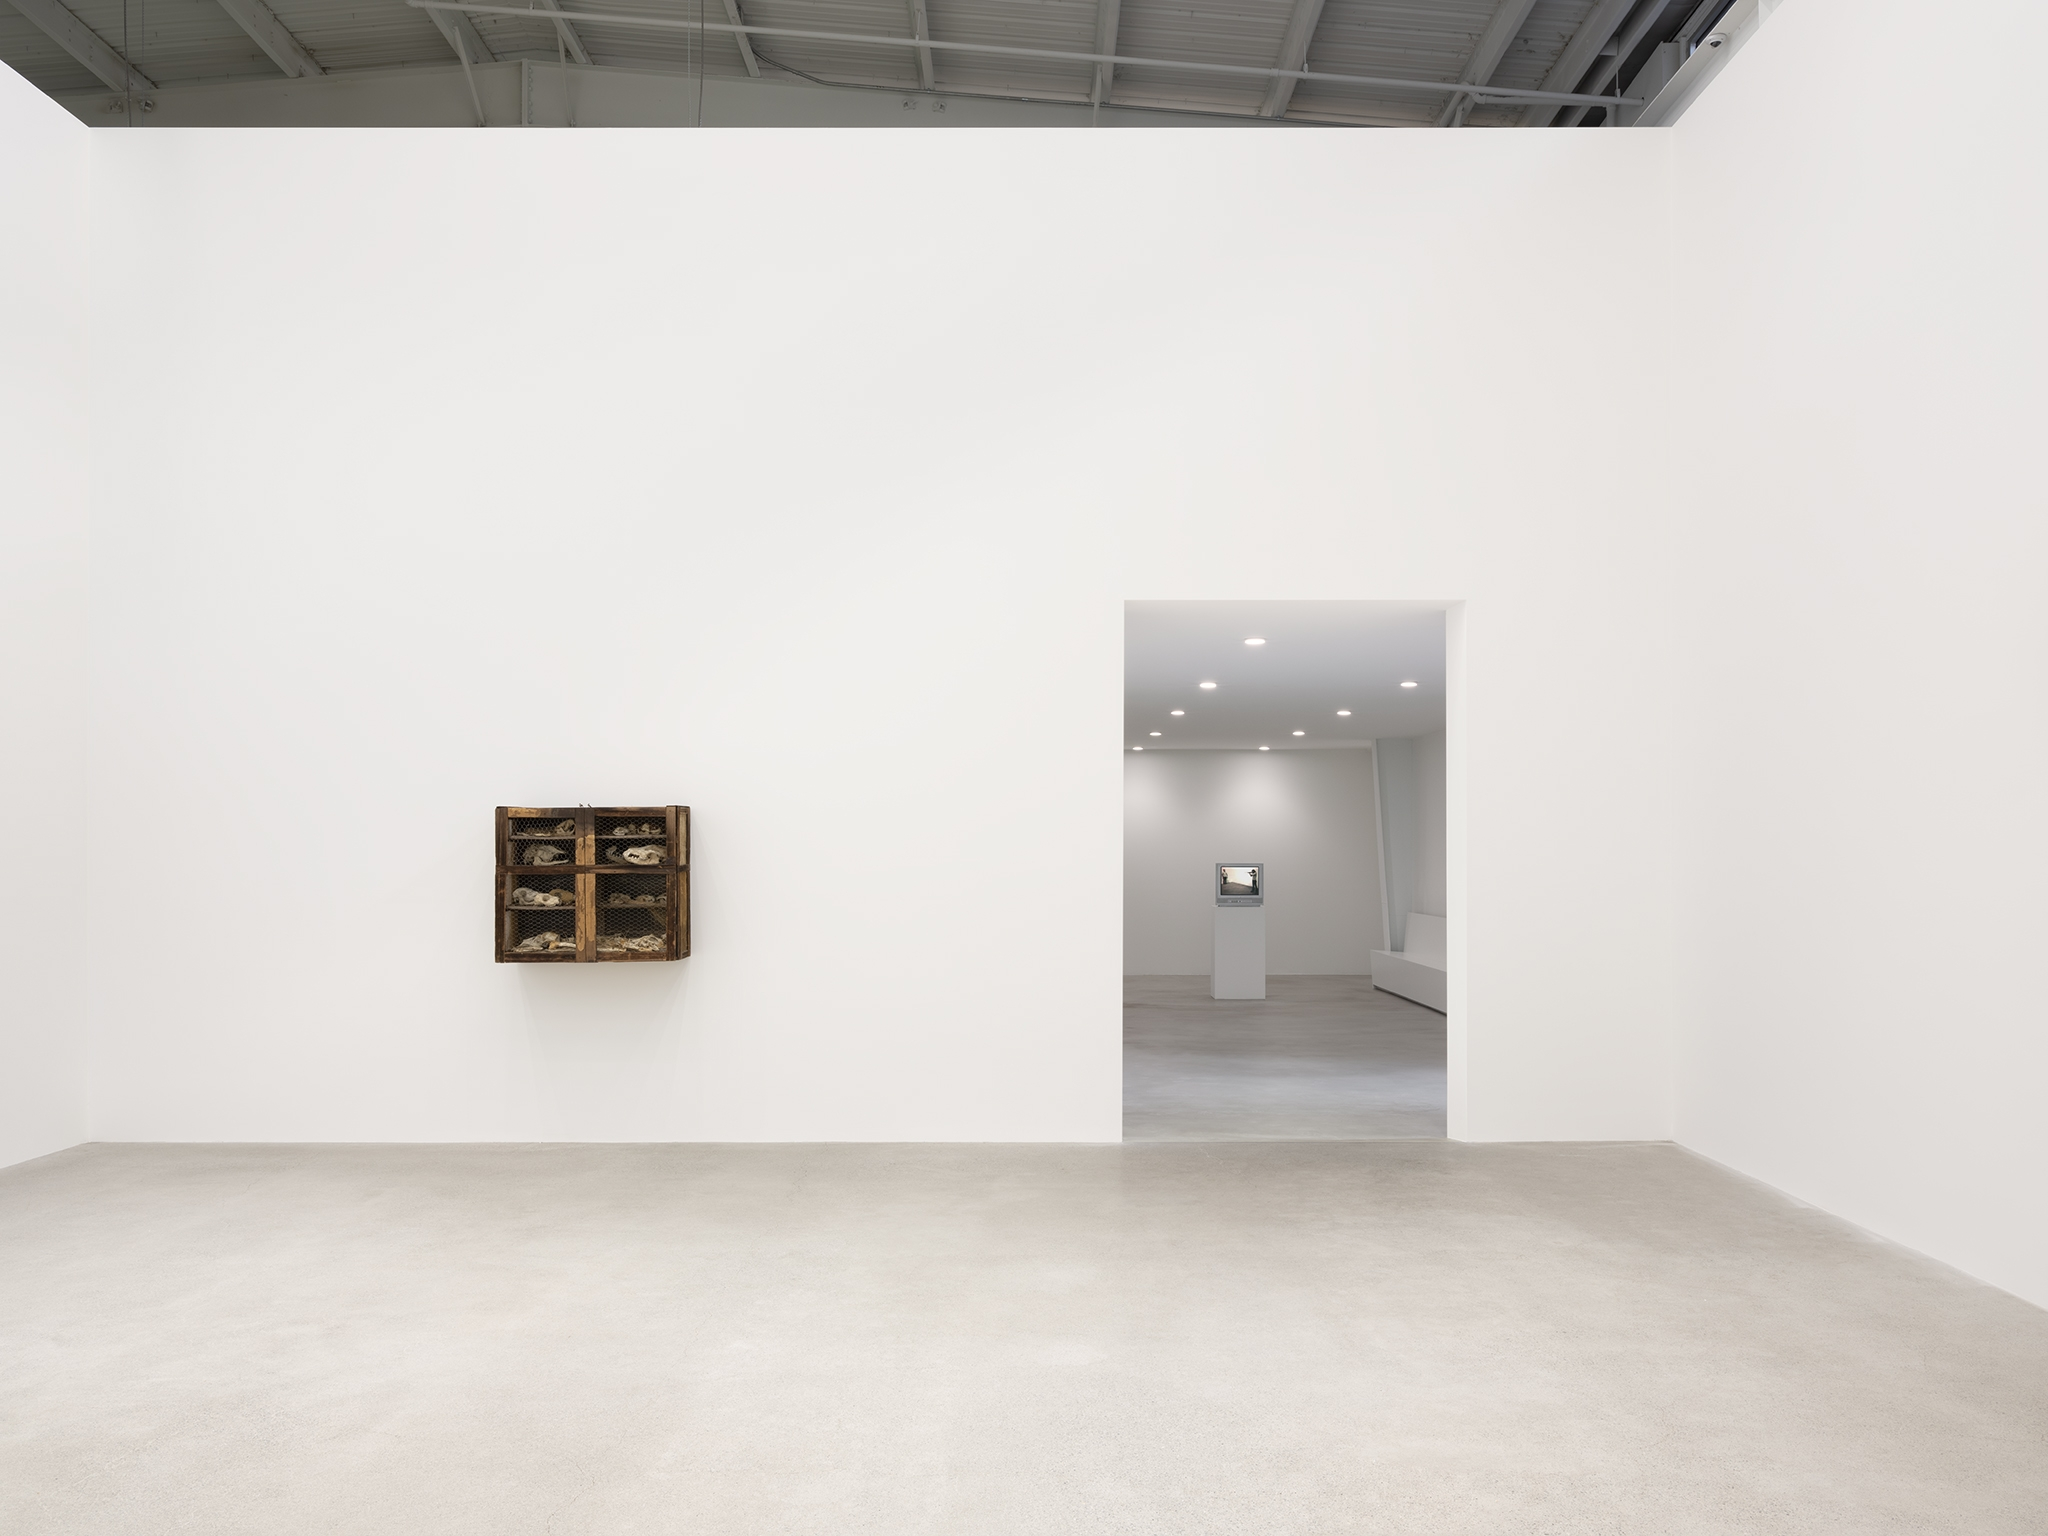 Chris Burden, Liz Magor, installation view, Unexplained Parade, Catriona Jeffries, Vancouver, March 9, 2019 by